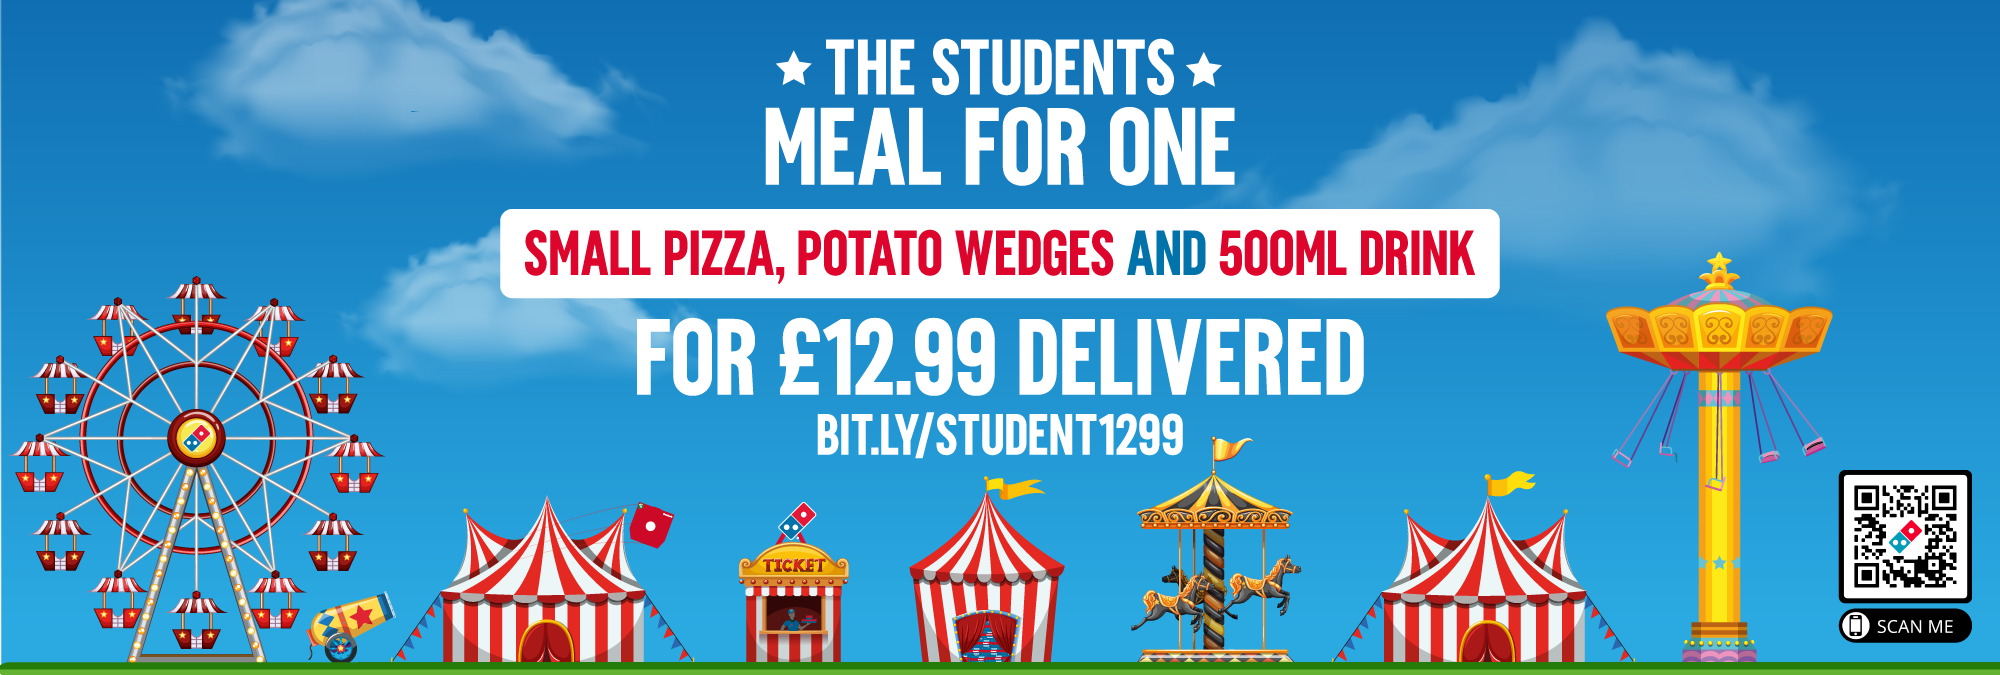 STUDENTS MEAL FOR ONE: SMALL PIZZA, POTATO WEDGES, AND 500ML DRINK for £12.99 delivered.